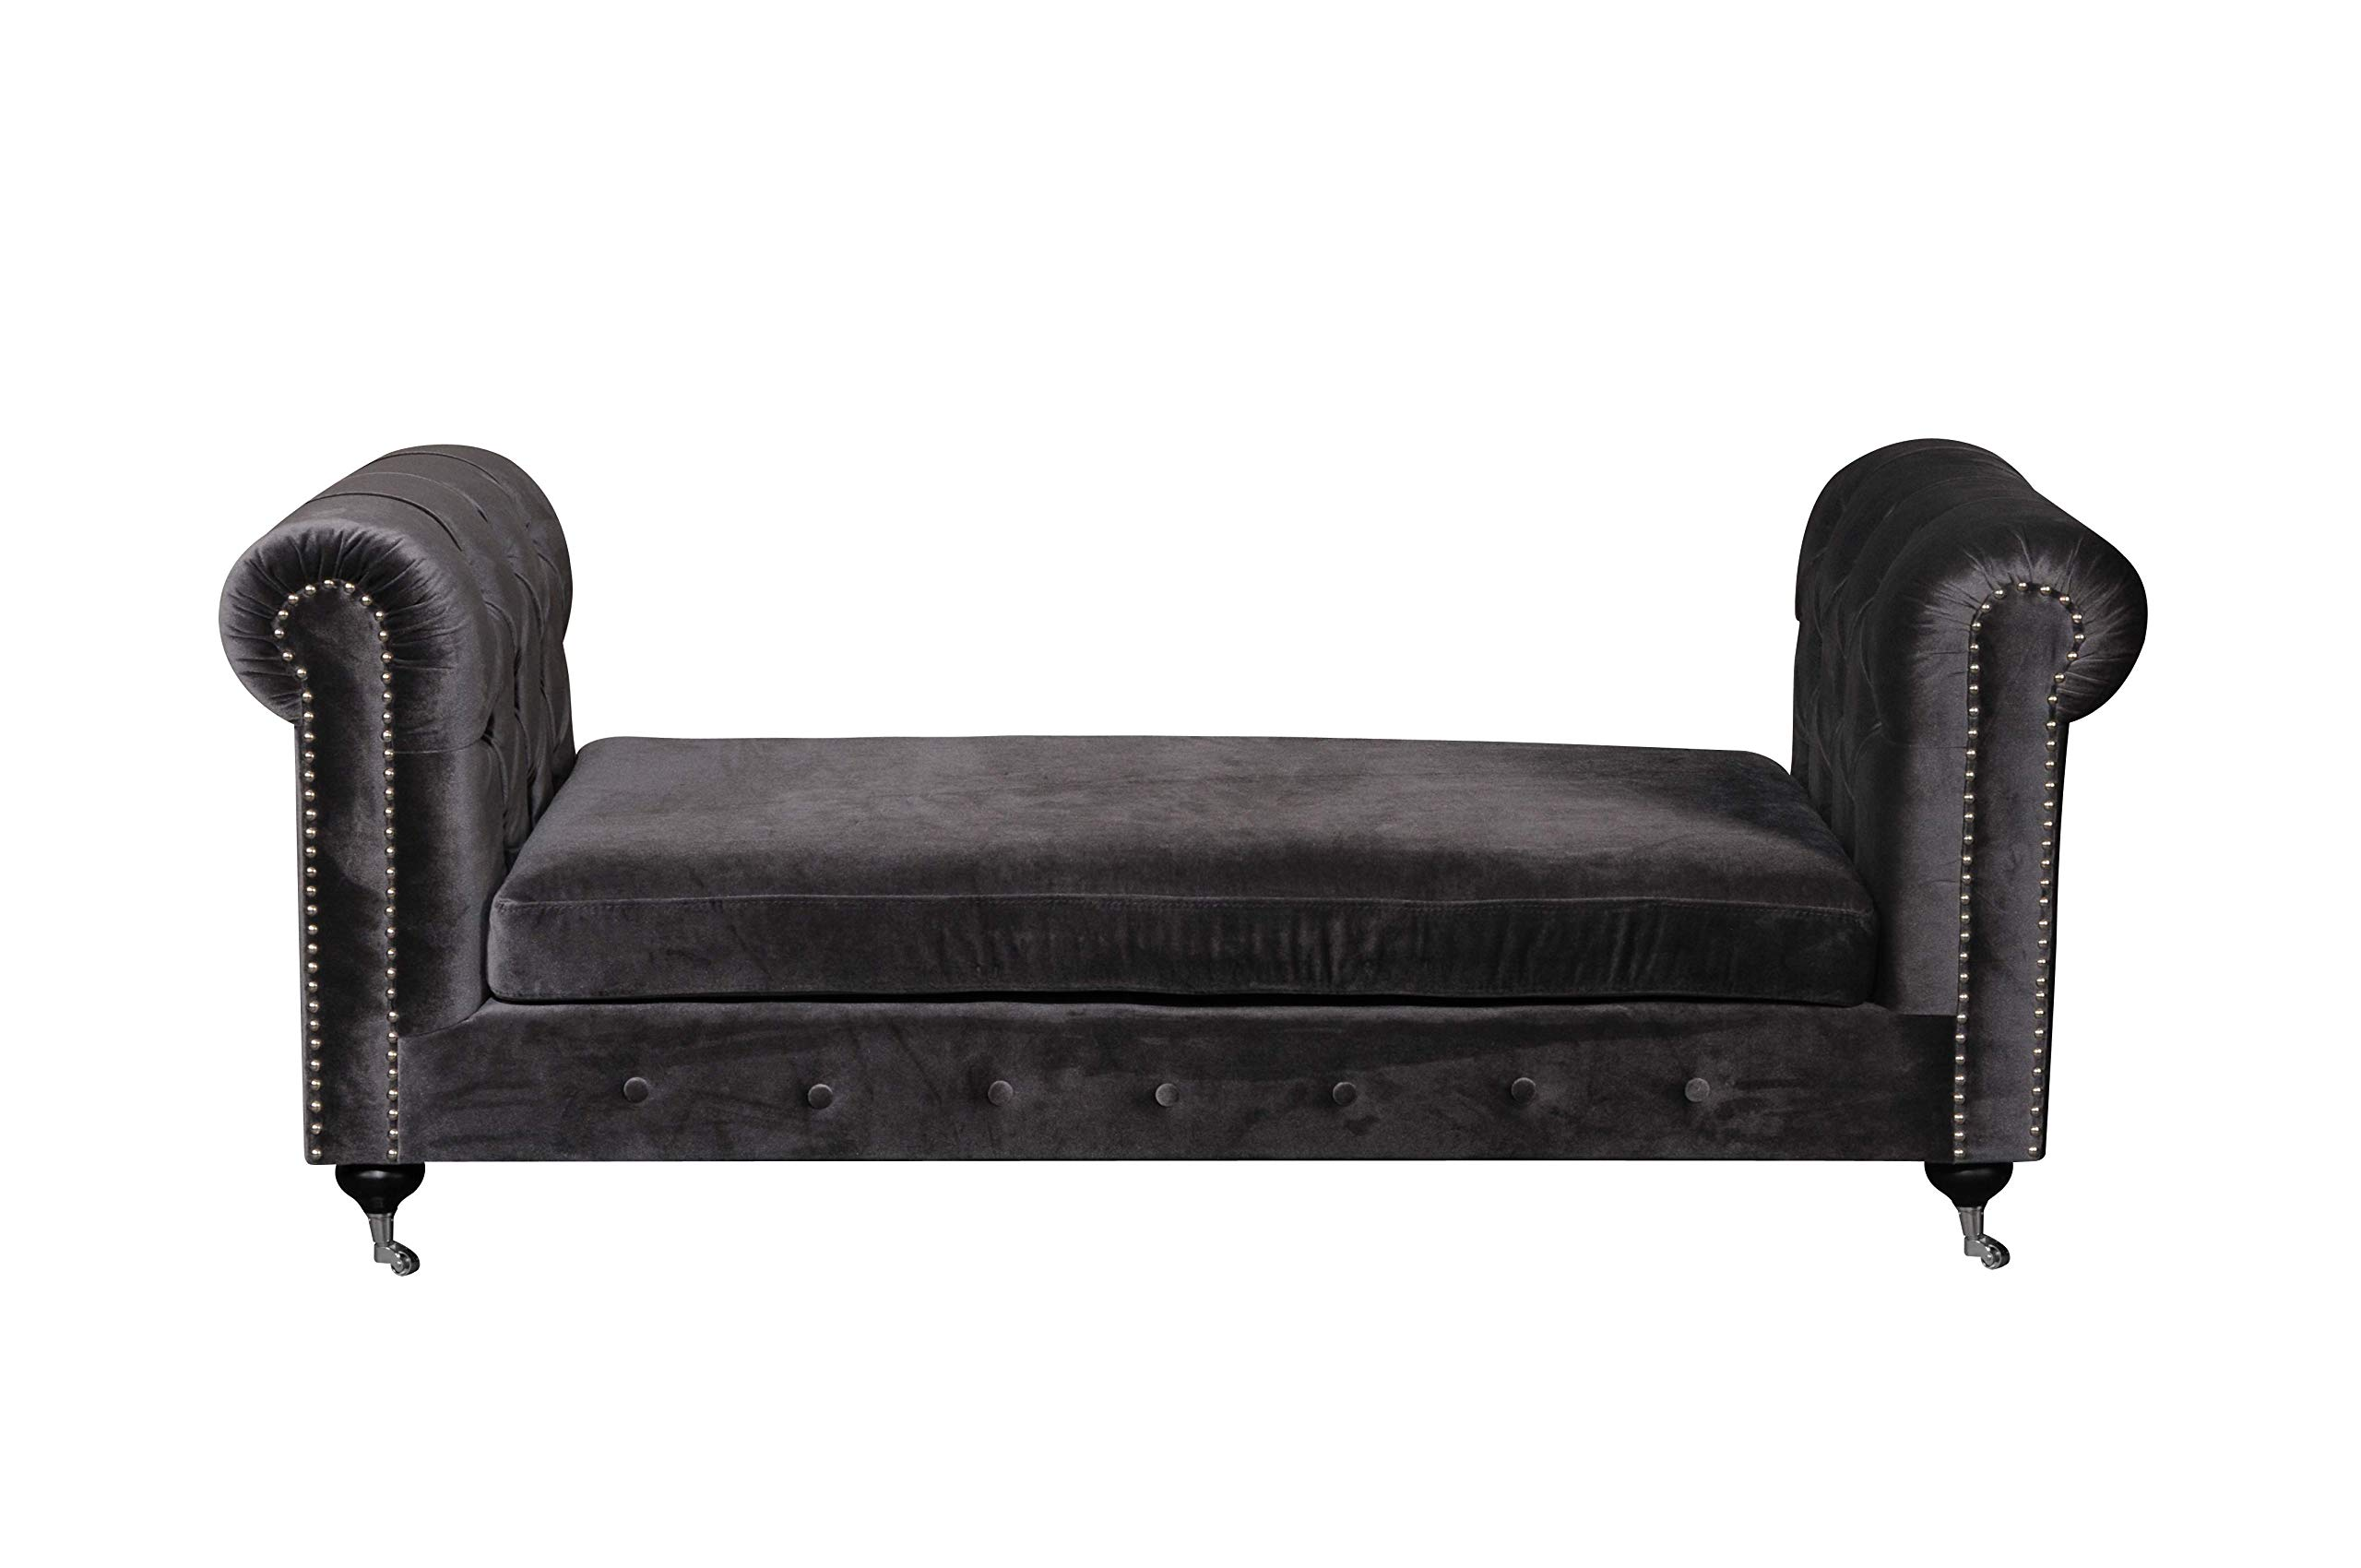 Pangea Home Z SLVR Claire Bench in Velvet with Hardware Silver by Pangea Home